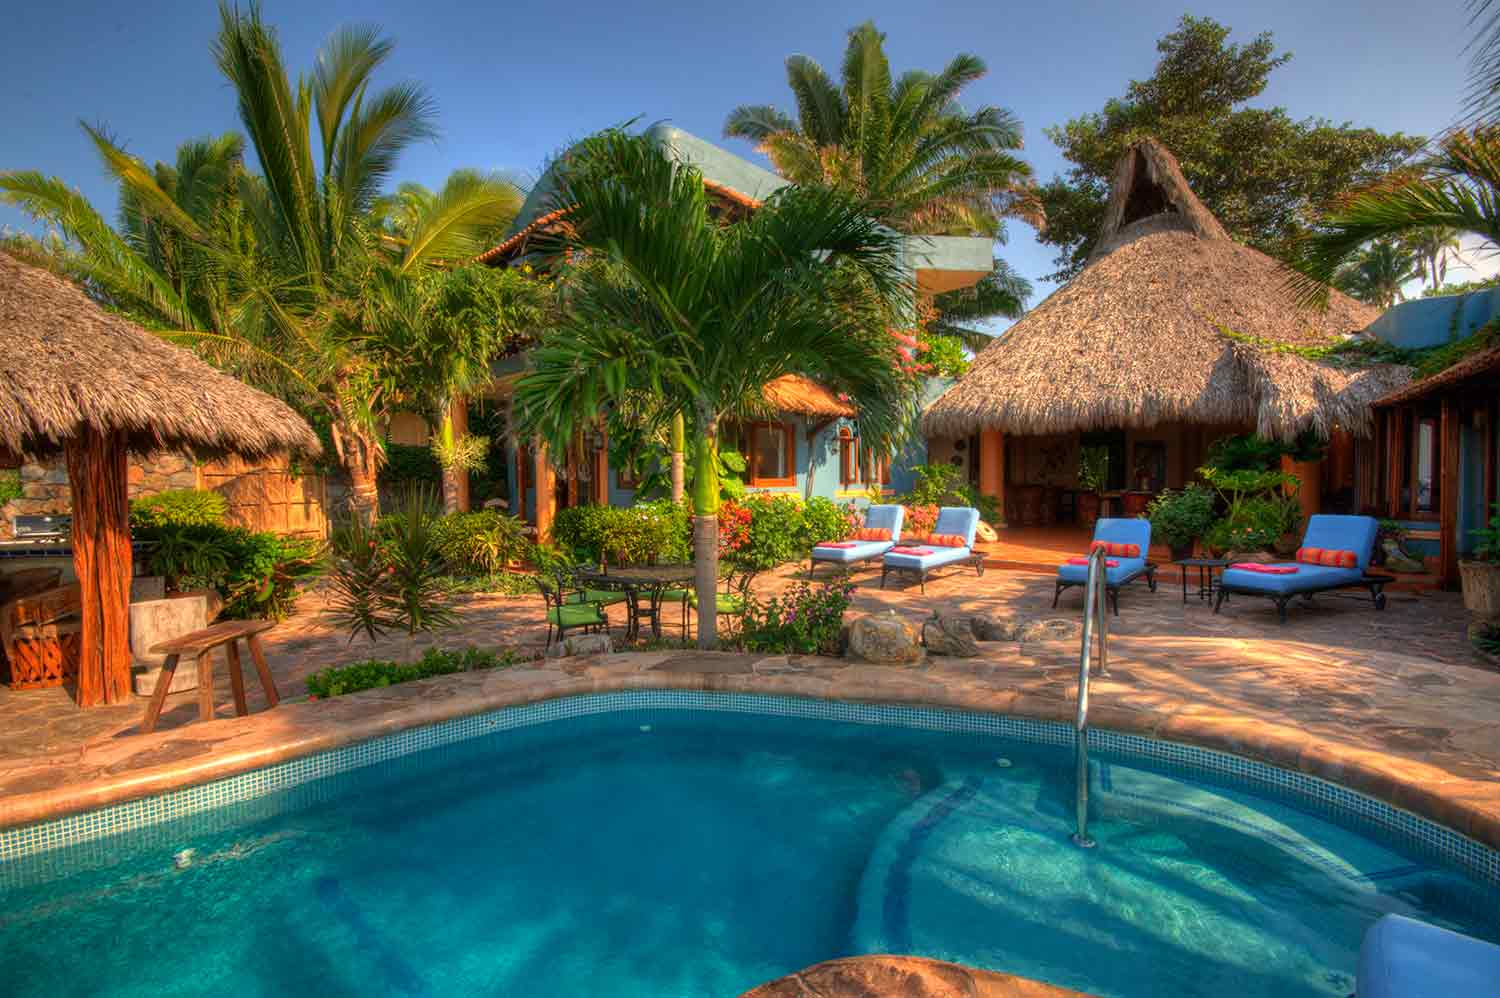 Palapa style villa with pool